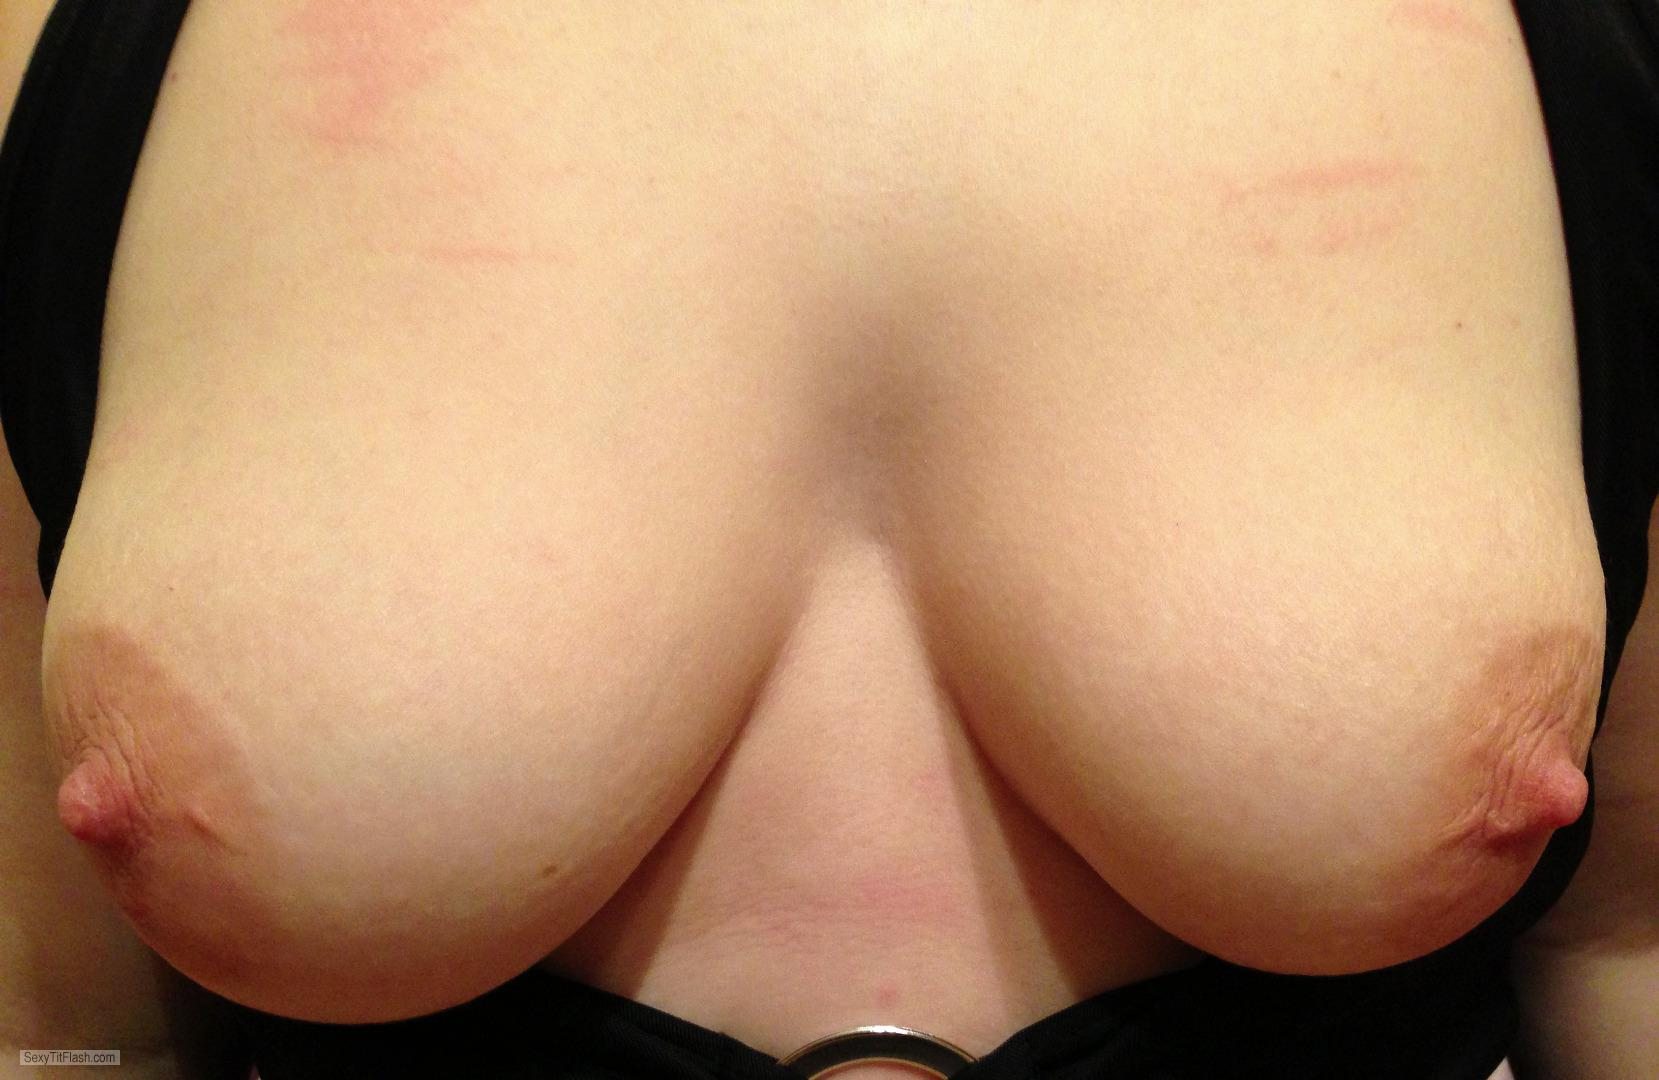 Tit Flash: My Medium Tits - Topless Iplay from United Kingdom